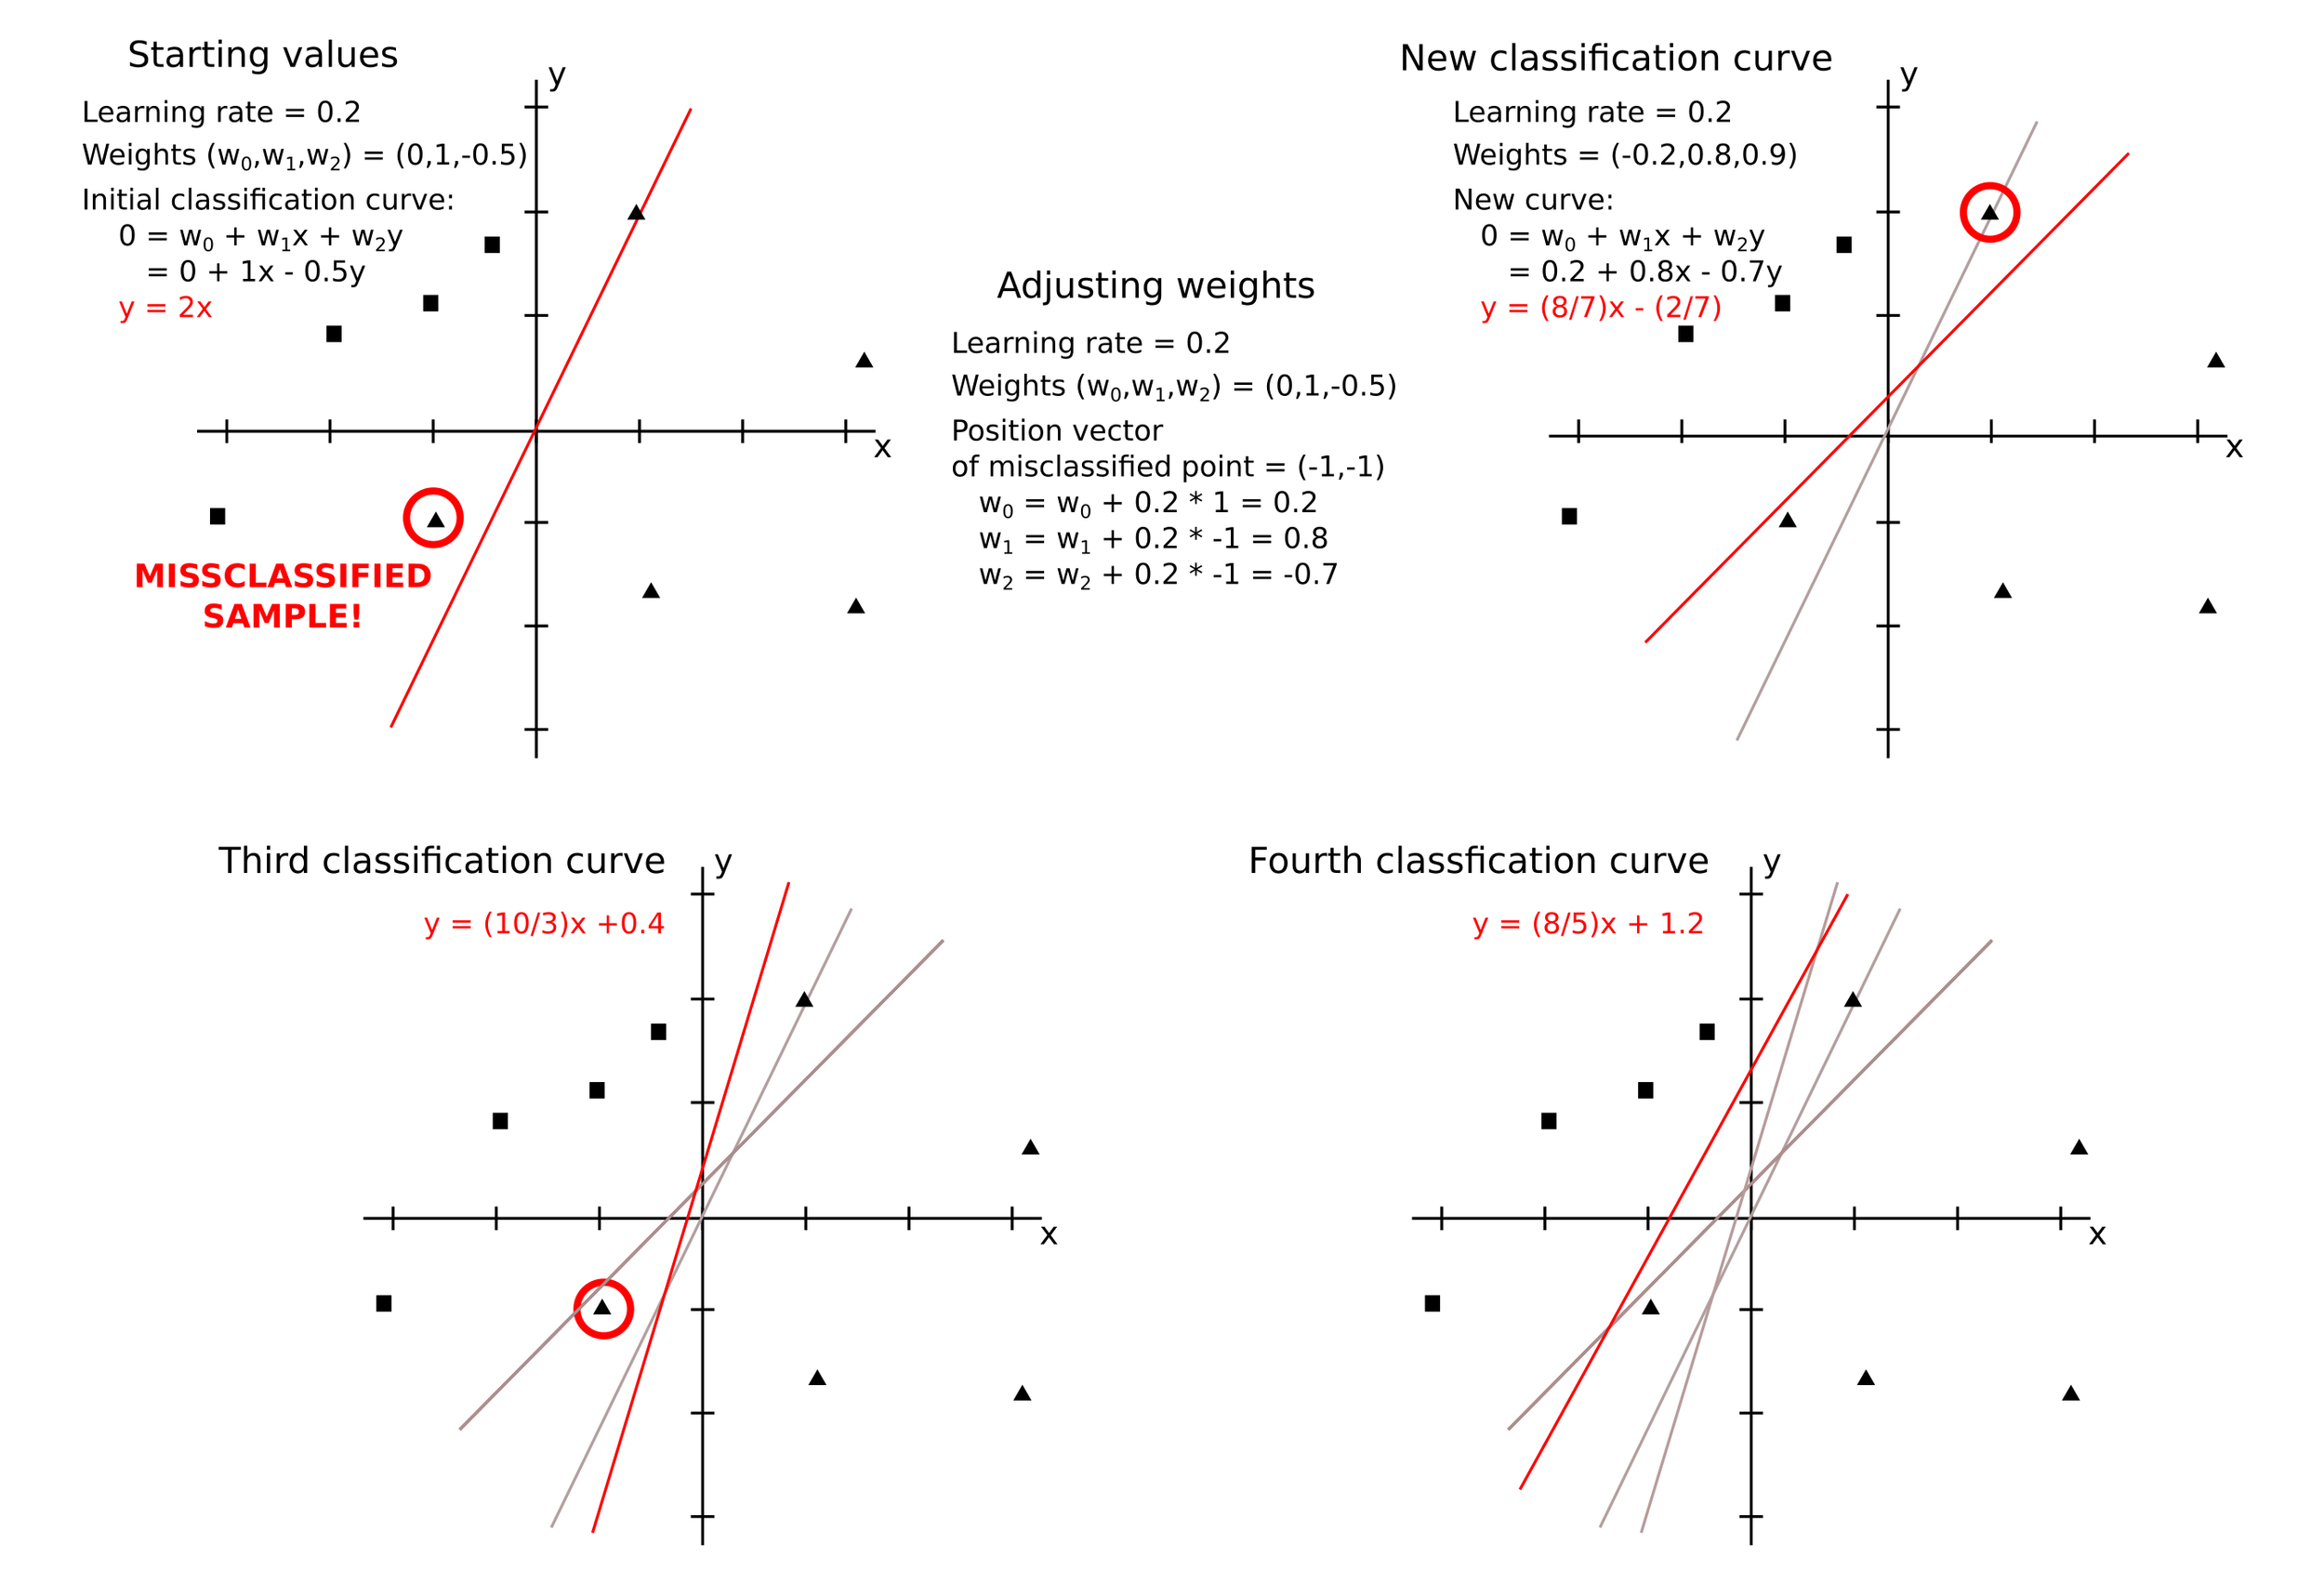 Perceptron training example. On the top-left, a perceptron classification problem to separate triangles from circles was initiated with arbitrary weights. The weights were then adjusted based on the position of one misclassified point and a new curve was drawn (top right). This process -was repeated 2 more times with incorrectly sorted points until a curve reliably separating triangle from squares was obtained (bottom-right).